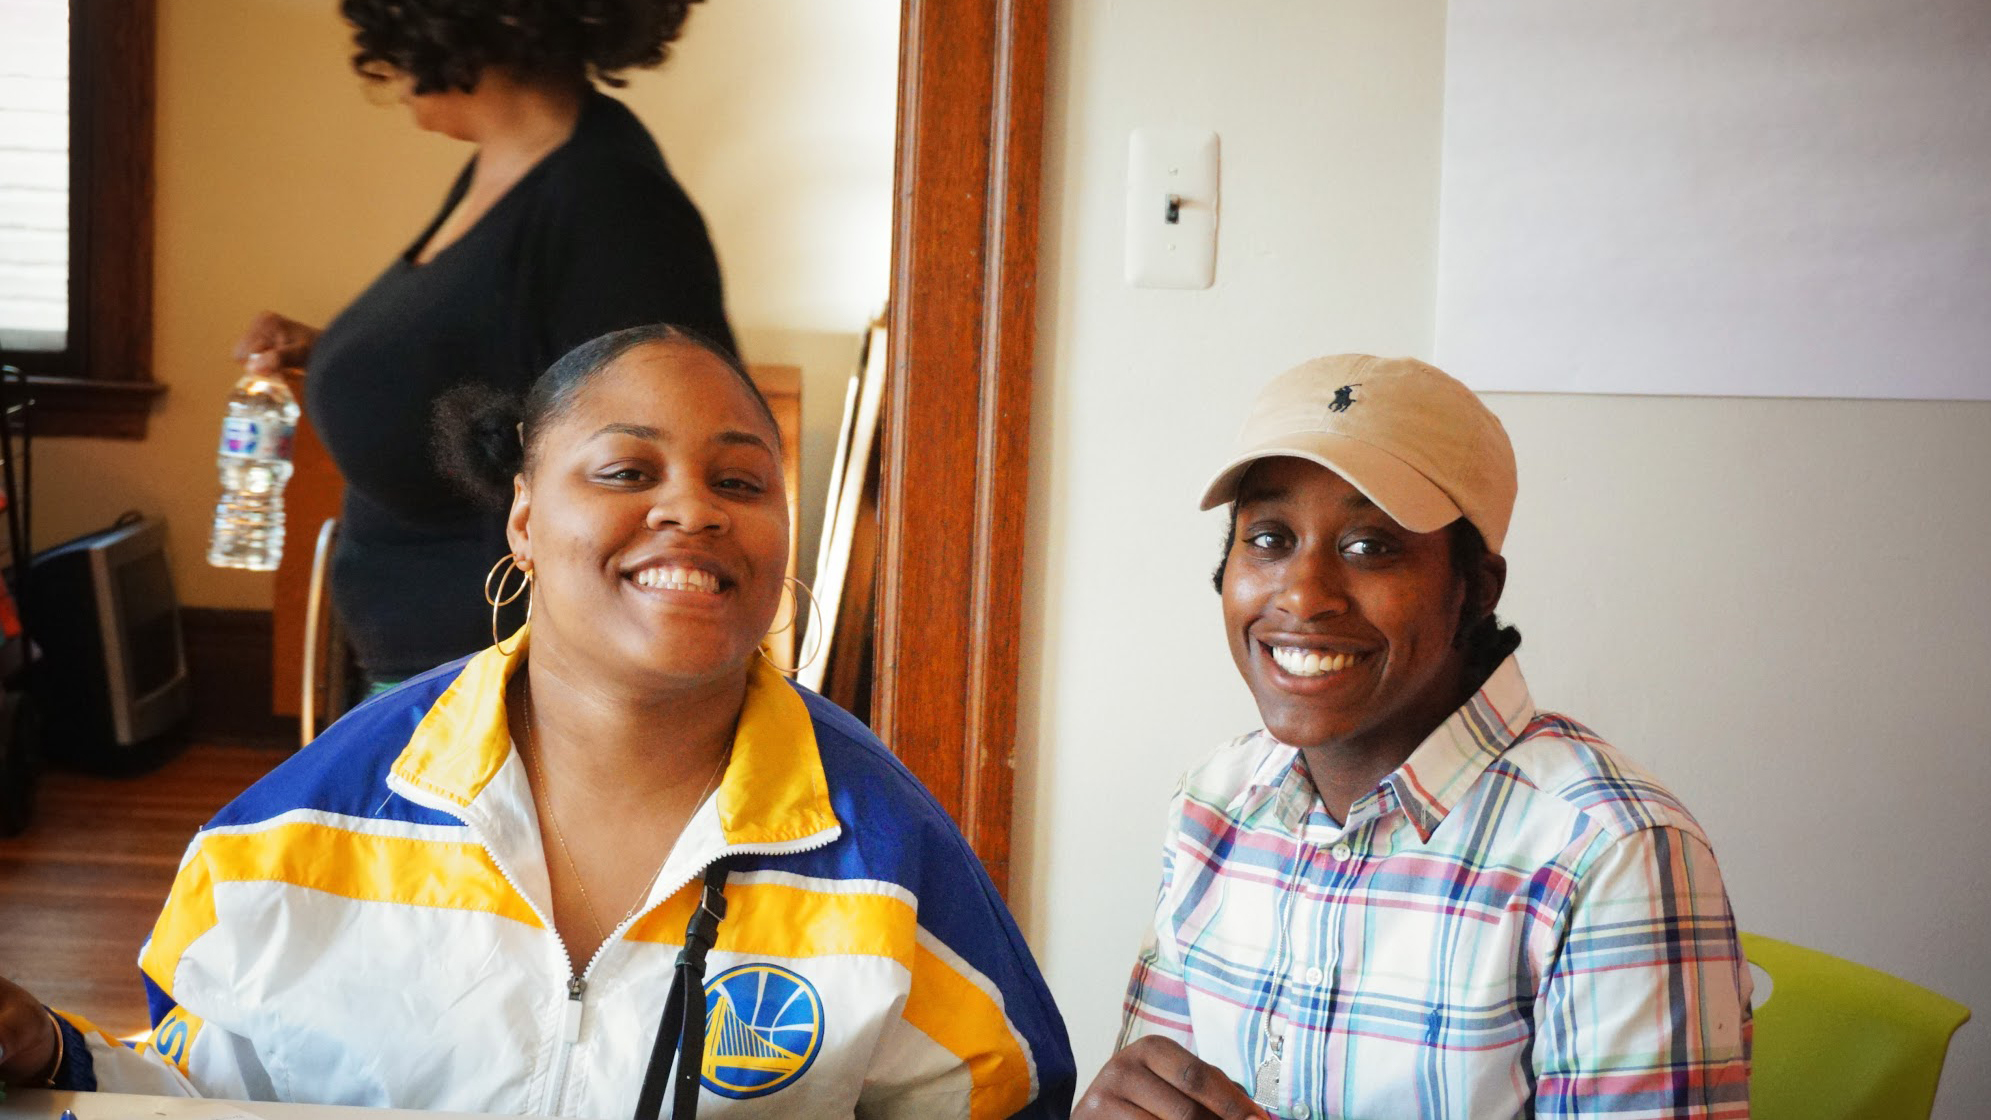 Photo shows two people sitting at a table. The one on the left is wearing a yellow, white and blue windbreaker. The one on the right is wearing a plaid shirt and a tan hat. Both are smiling.